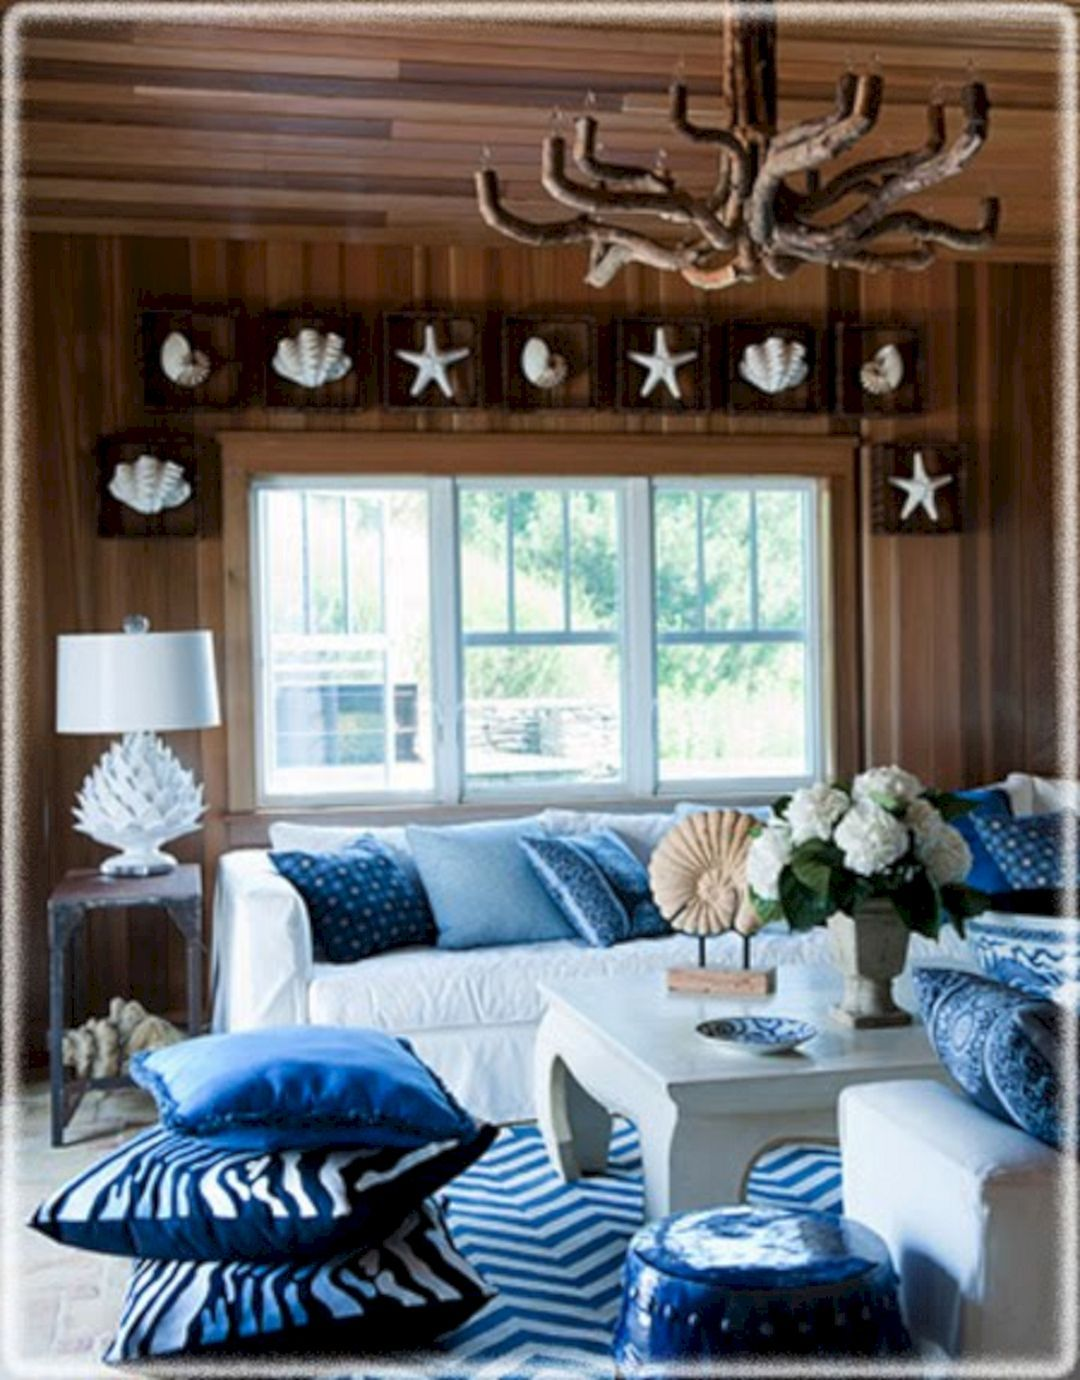 Marvelous 50 Awesome House Wall with Rustic